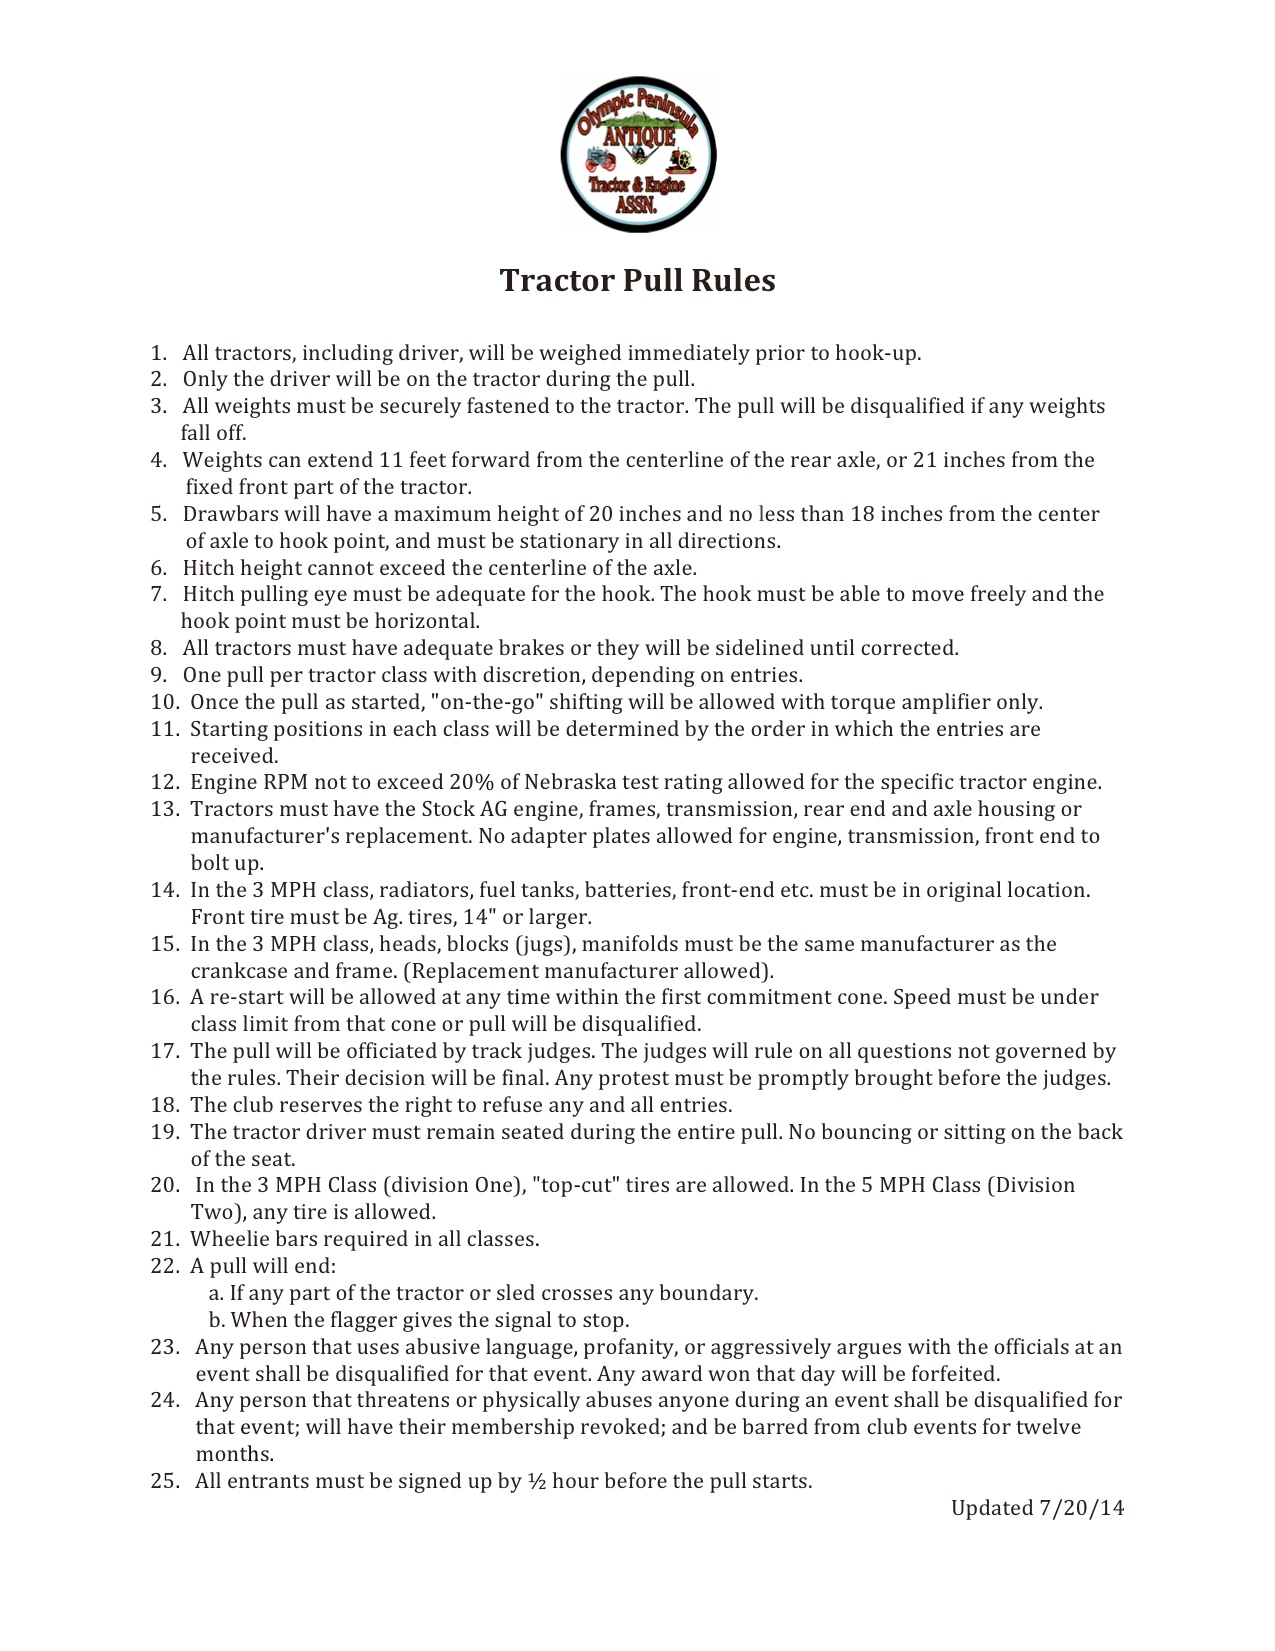 Tractor Pull Rules2016